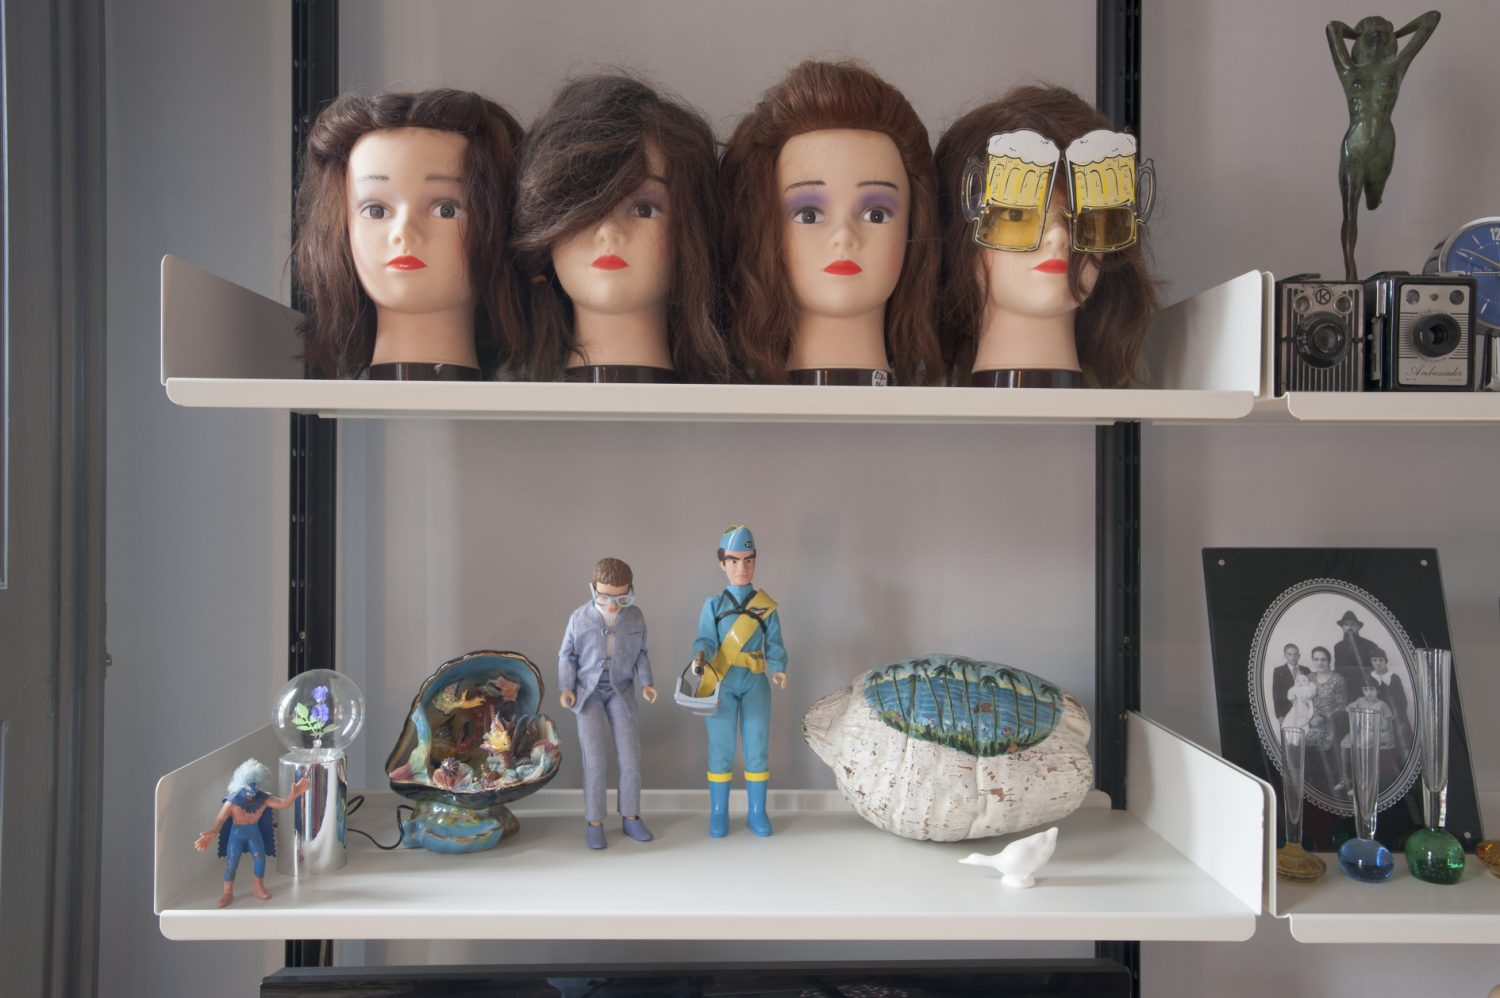 Hairdressing training heads line one shelf in the sitting room